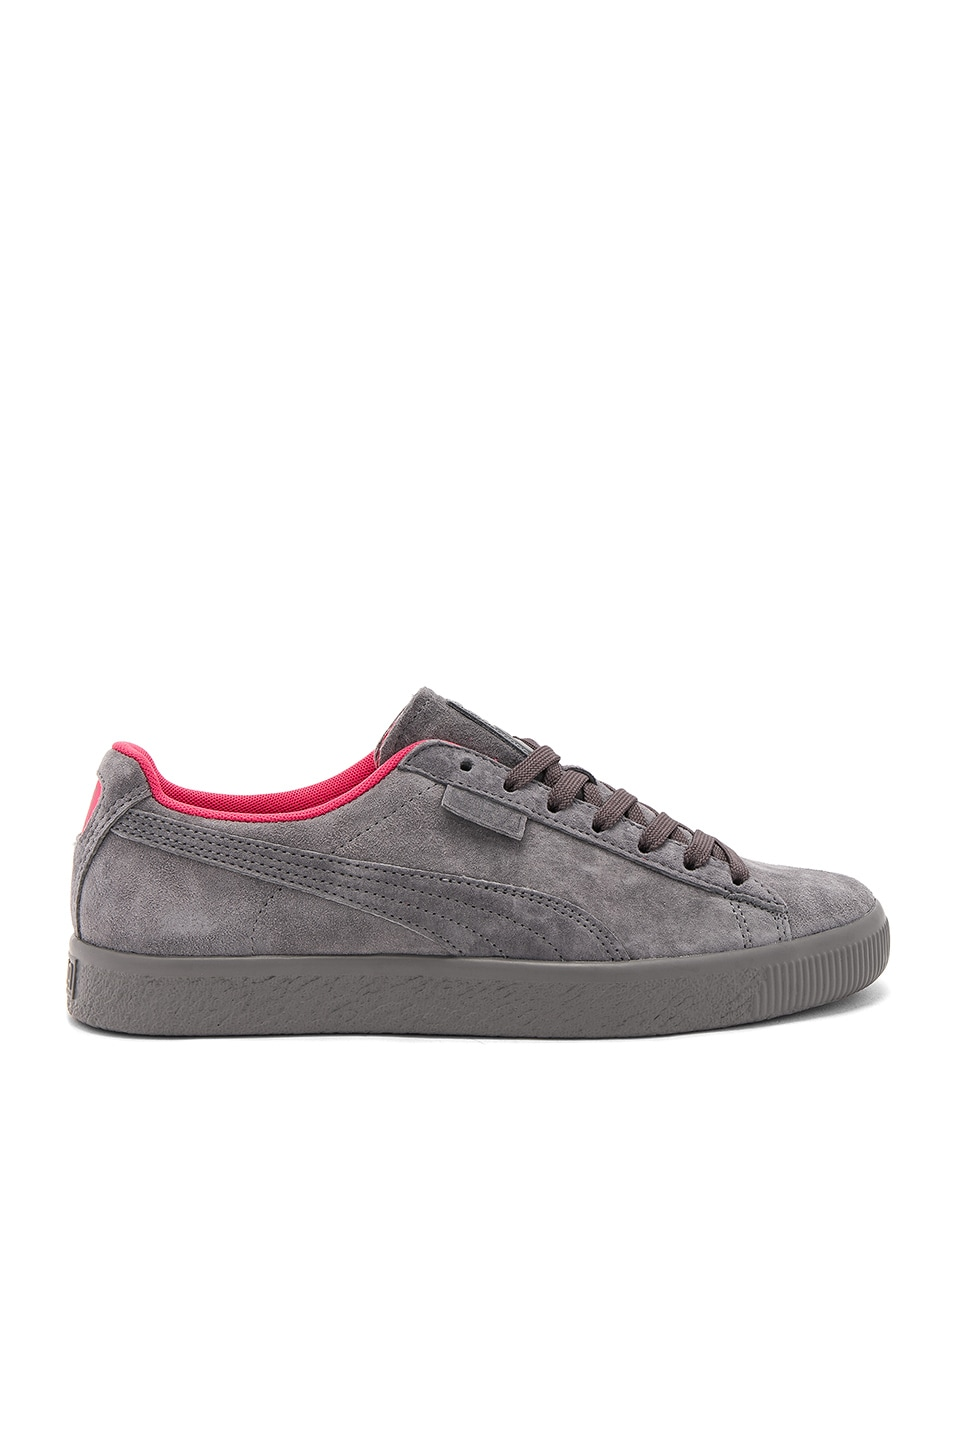 x Staple Clyde by Puma Select